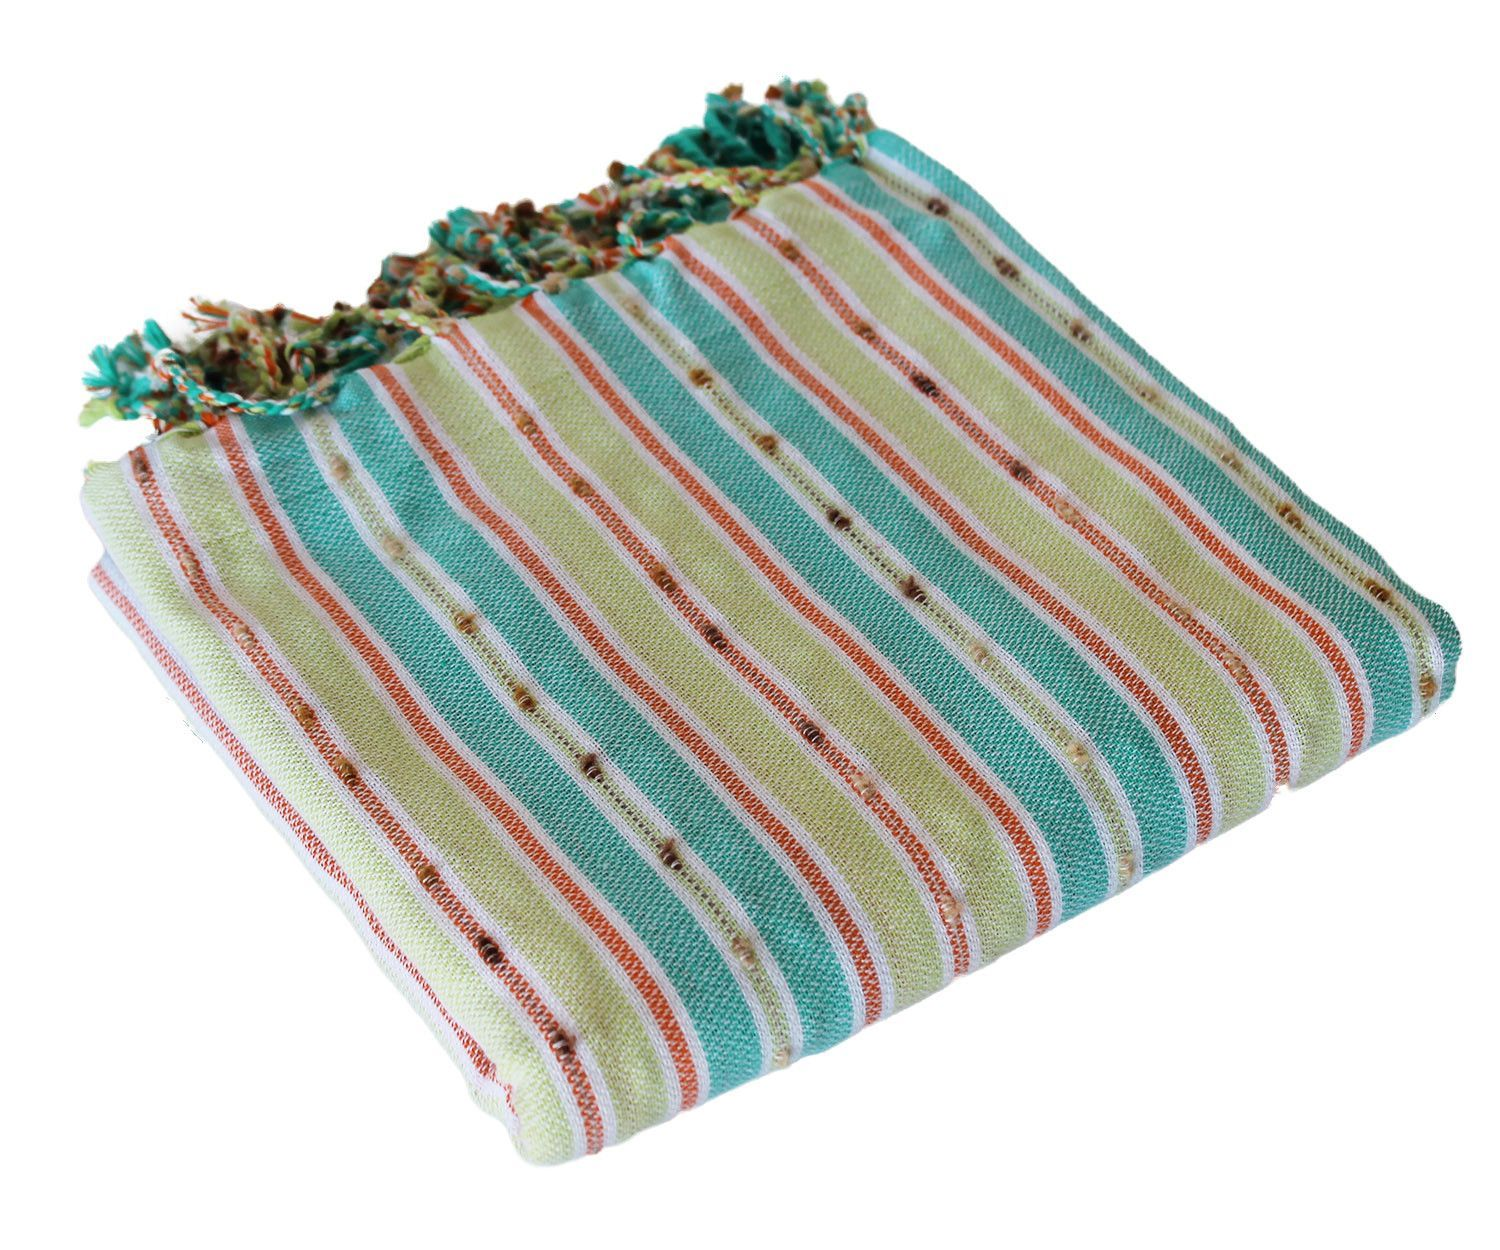 Mint Green Bath Towels Amusing Mint Green Designer Peshtemal Turkish Towel  Mint Green Towels And